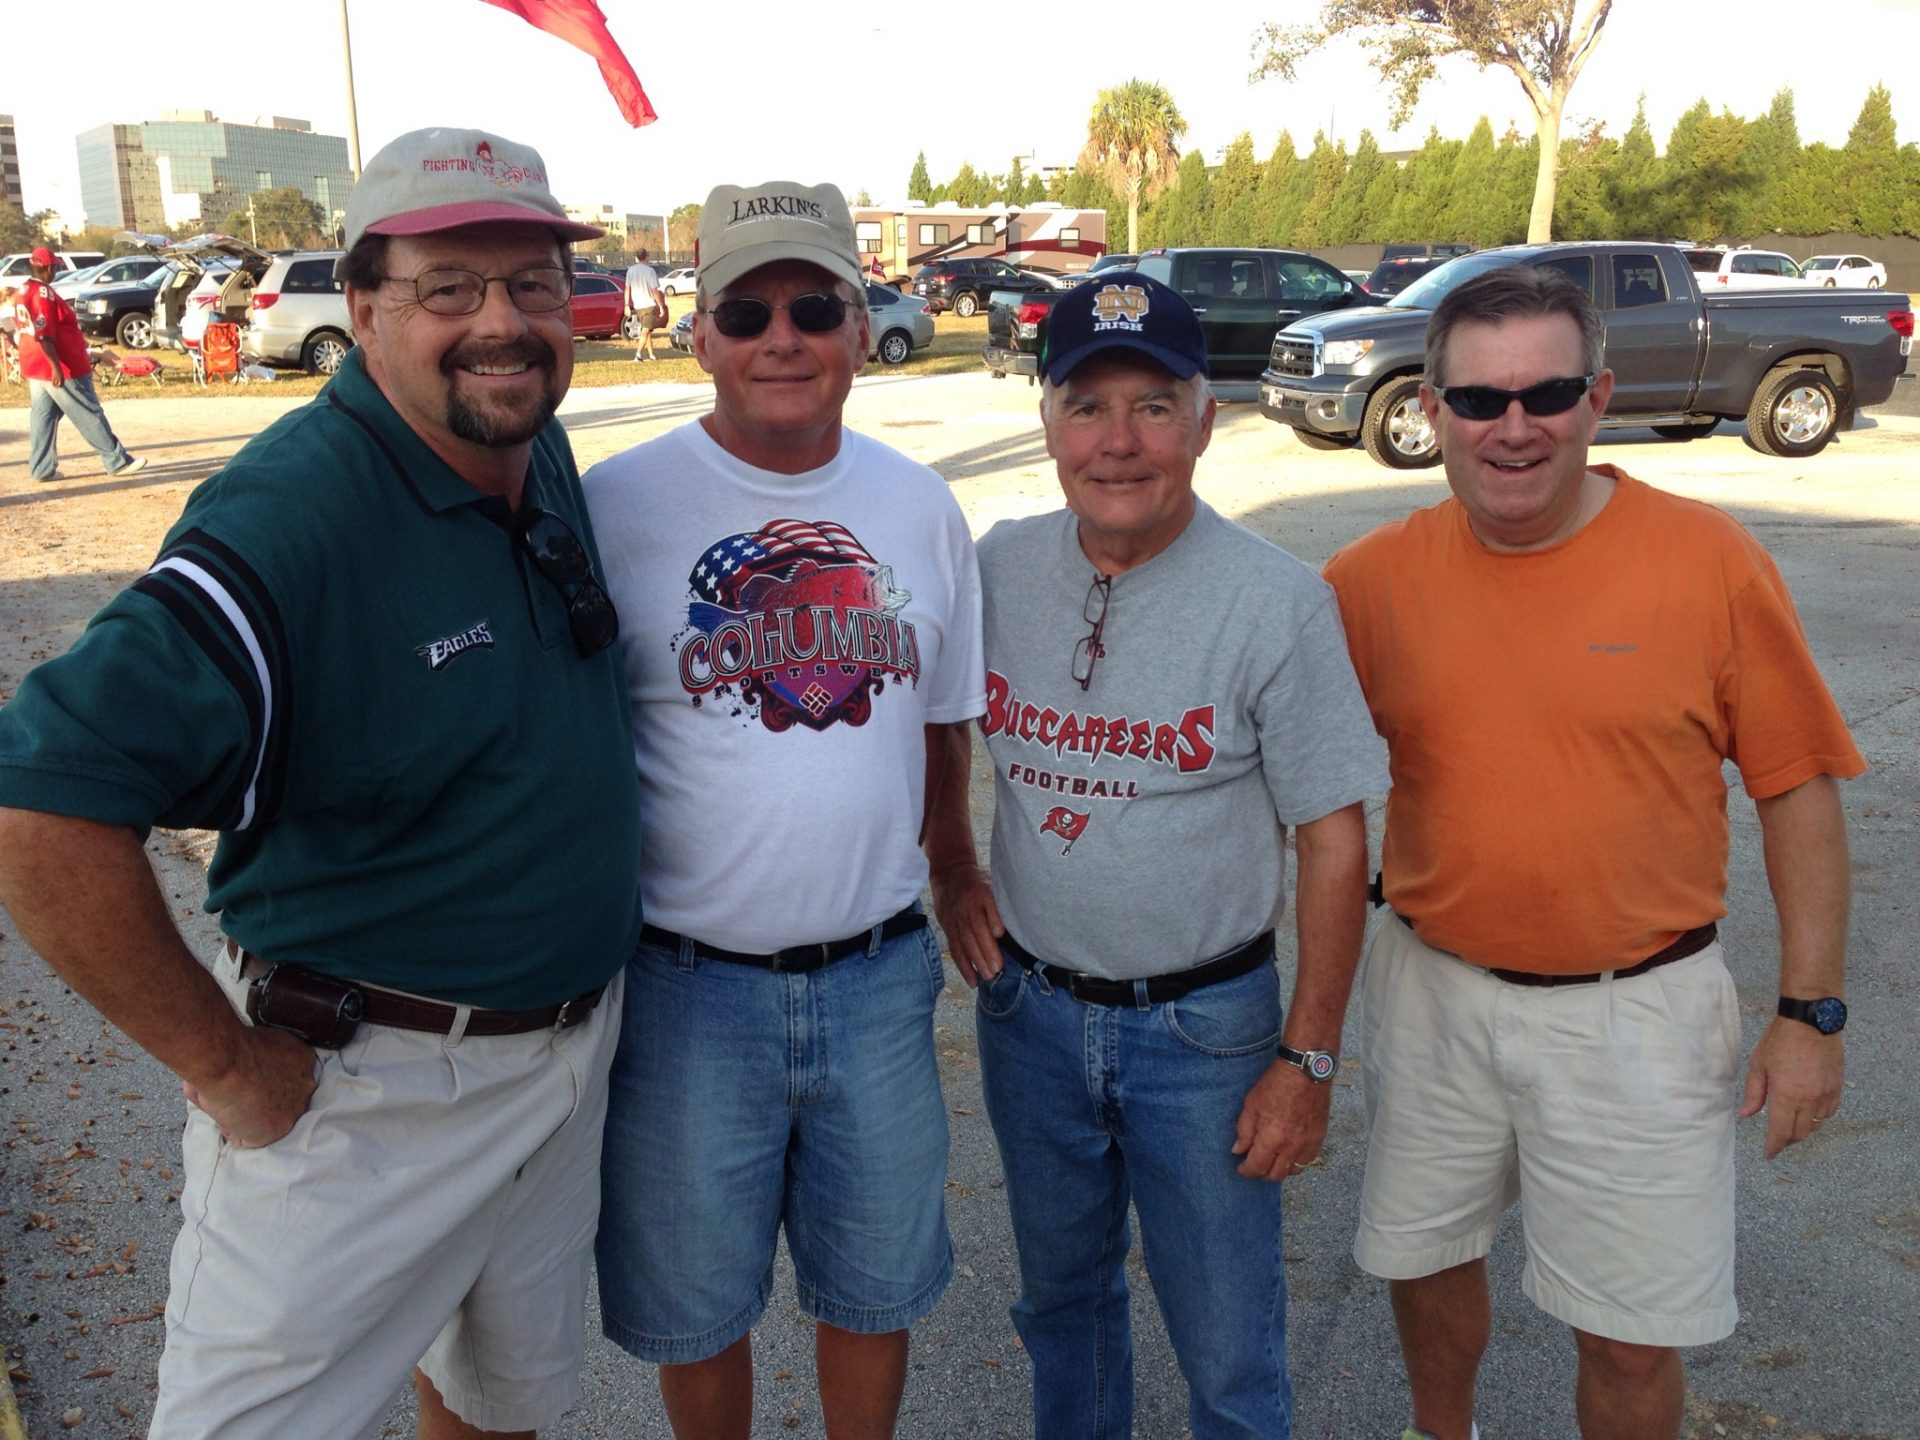 The four amigos from the Village of Piedmont, attending the Eagles - Bucs game on December 9, 2012. L-R Michael Gavigan, Bob Vogel, Pat Murphy and Eric Ehlers. RIP dear friend Michael.